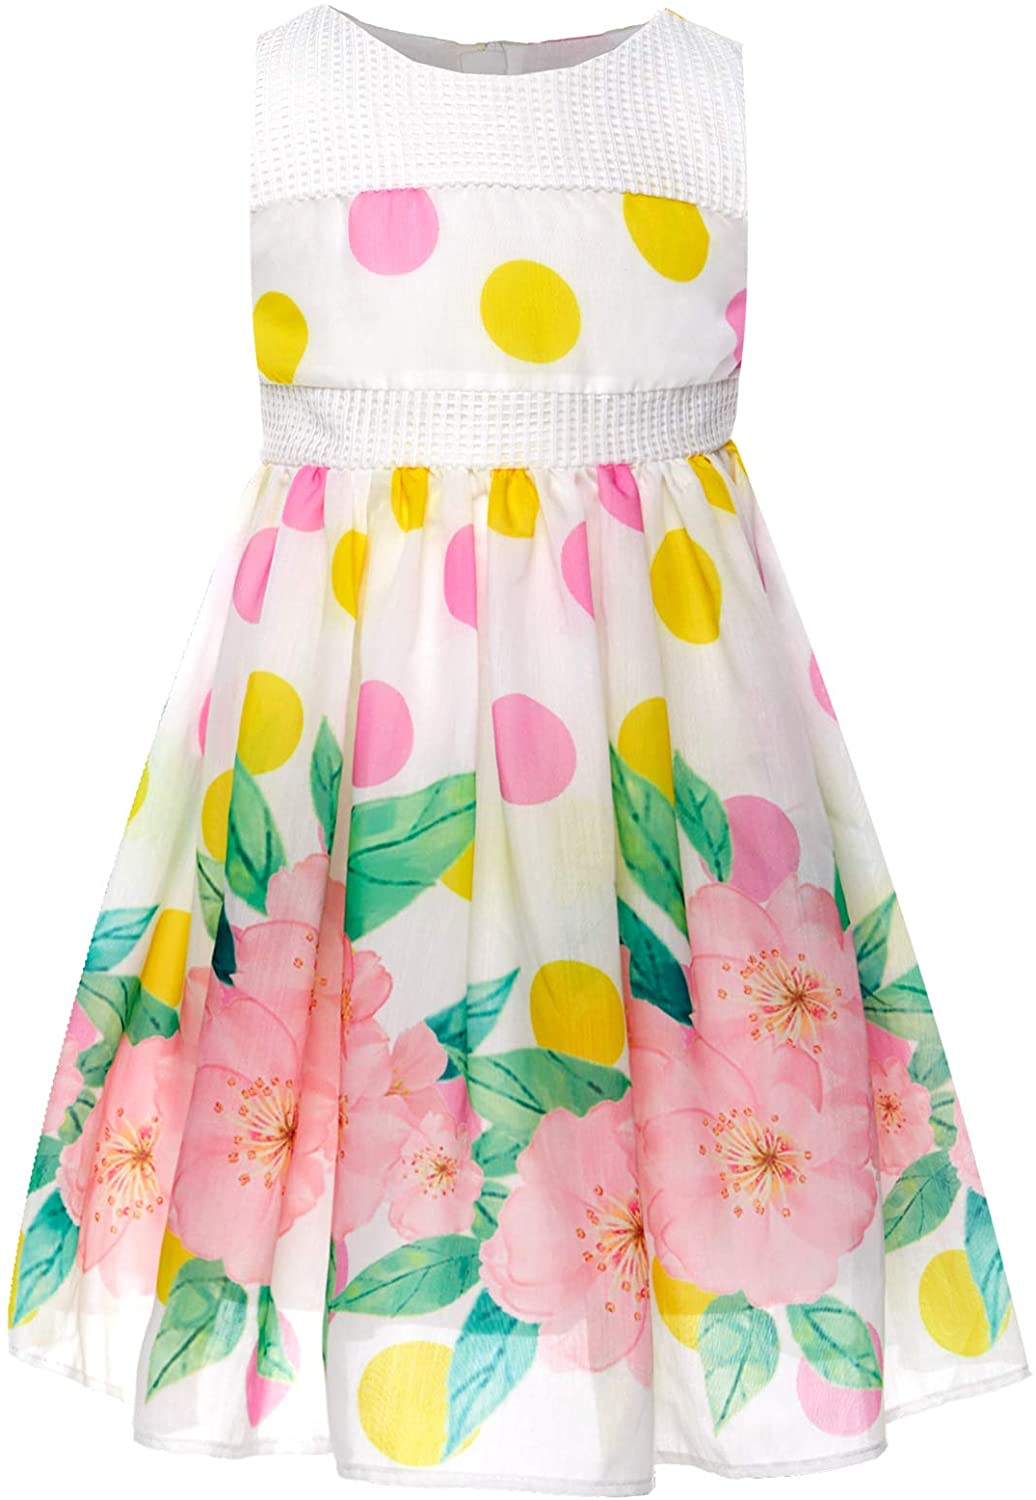 Bonny Billy Girls Spring Dresses Special Bodice Polka Dot Big Flower Print Outfits 3-11t